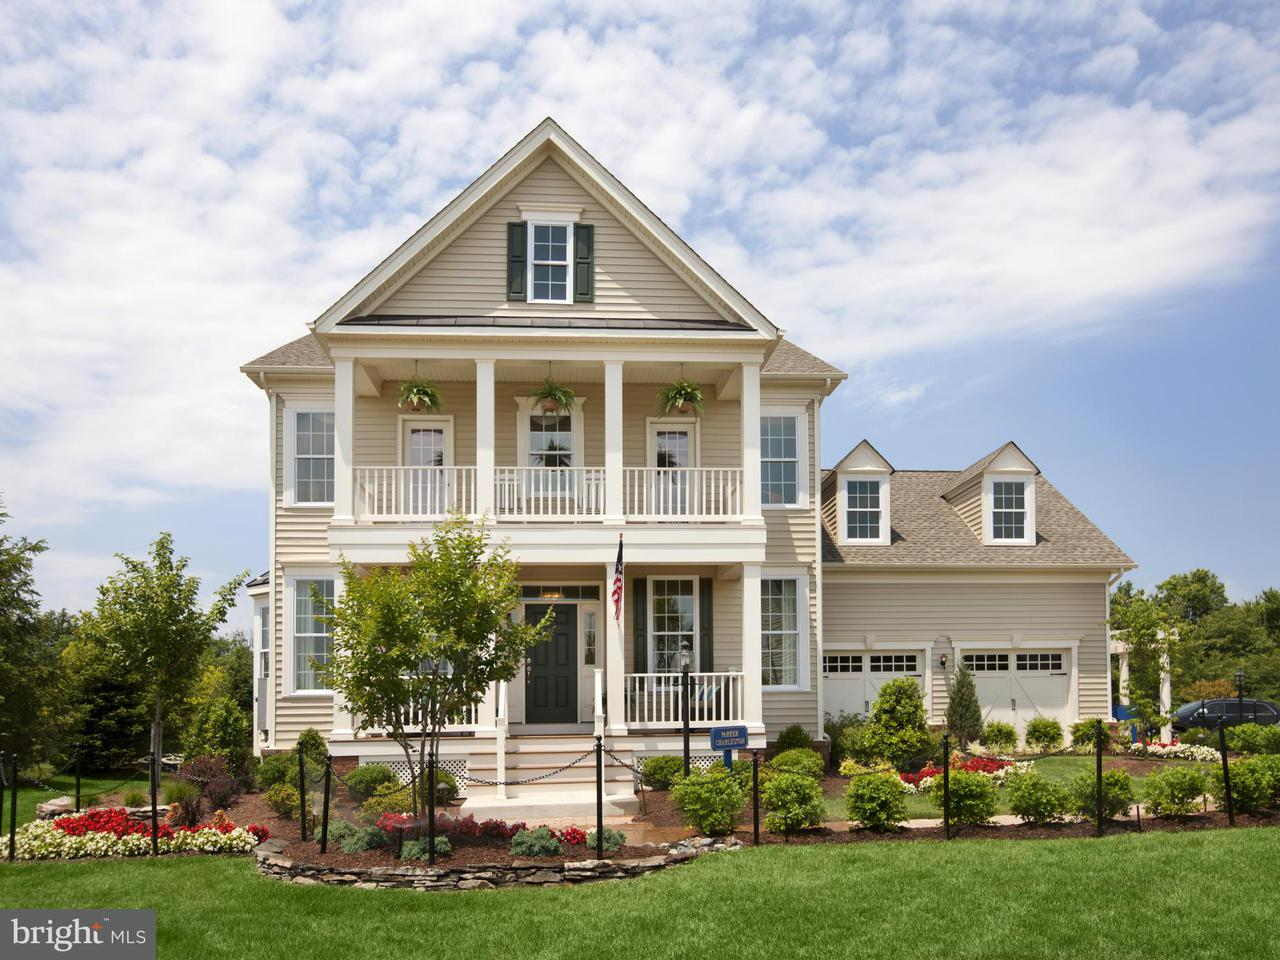 Additional photo for property listing at 24267 Crabtree Court 24267 Crabtree Court Aldie, Virginia 20105 Estados Unidos